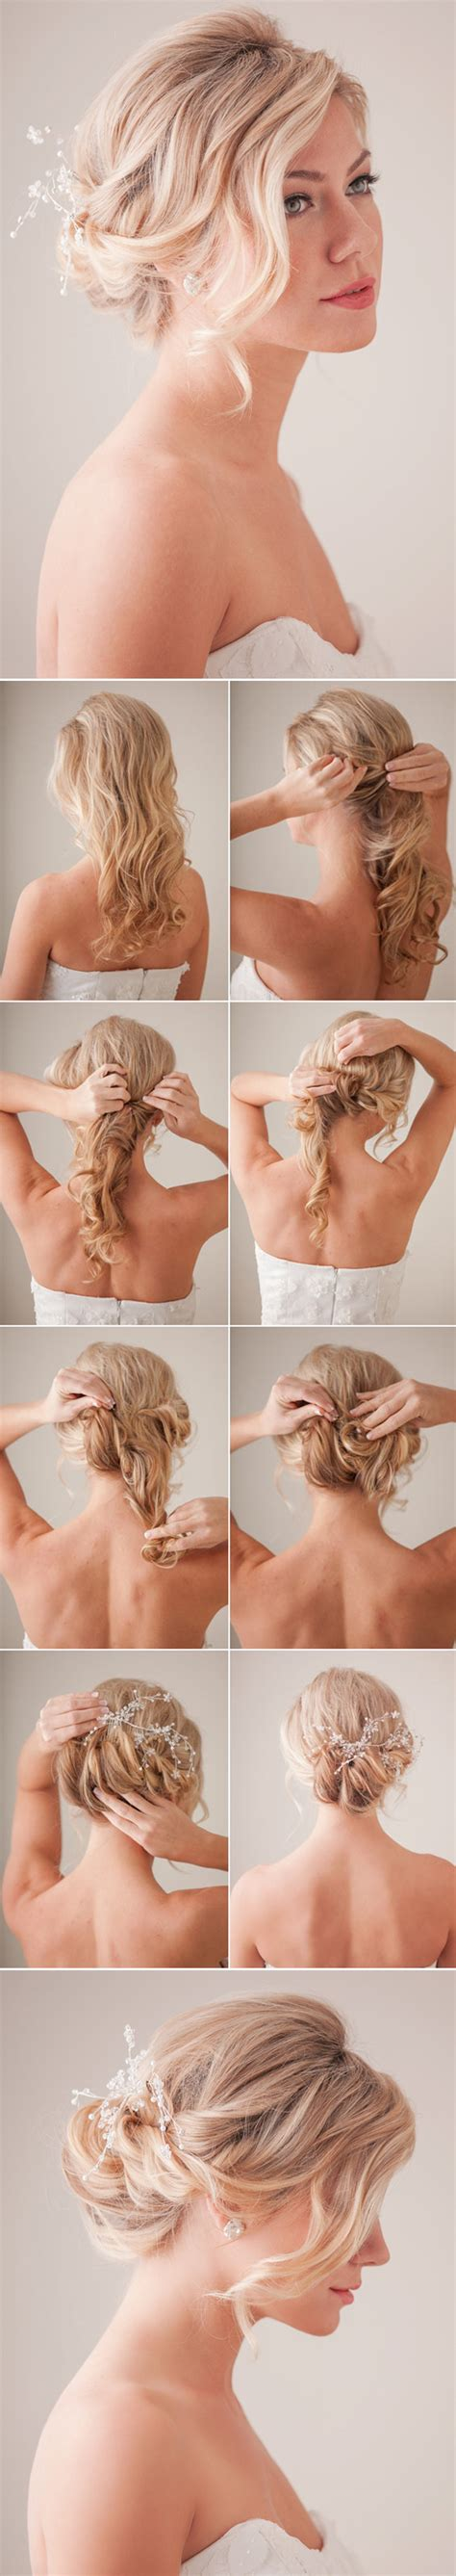 hairstyles diy blog bridesmaid hairstyle tutorials fade haircut